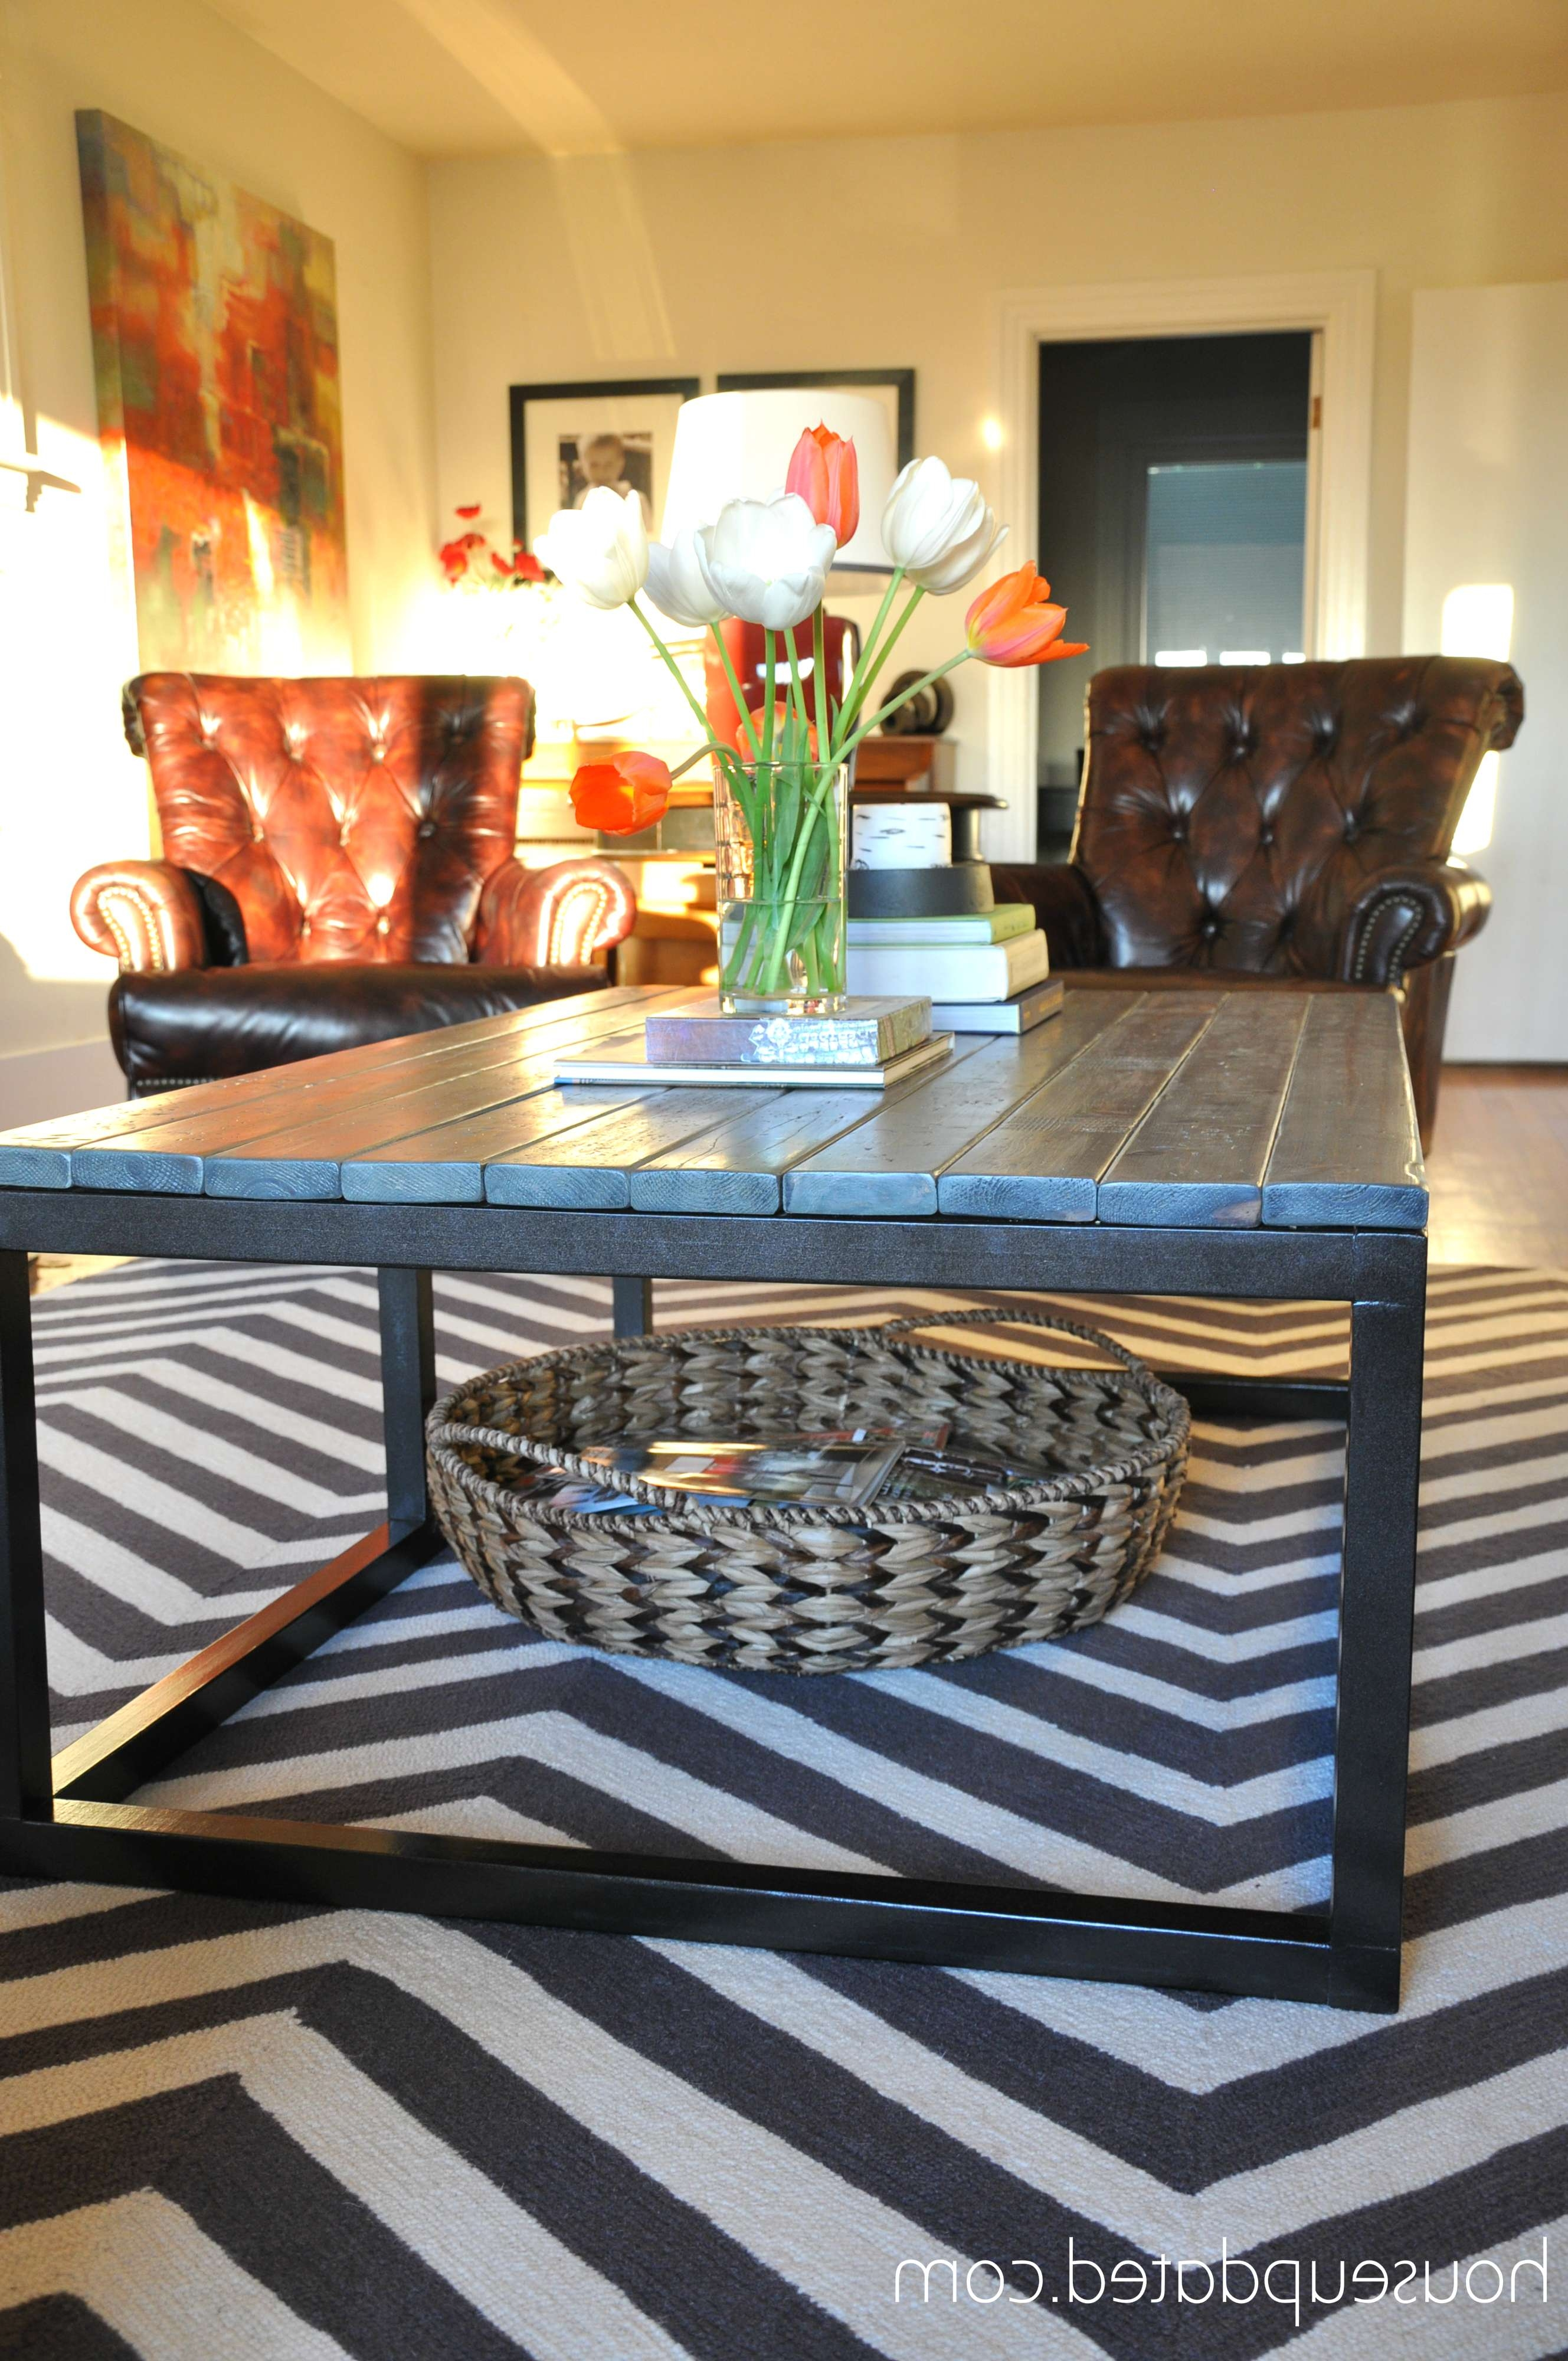 Most Popular Coffee Tables With Baskets Underneath Throughout Under Coffee Table Storage Baskets Rolling From Up Leksvik (View 15 of 20)